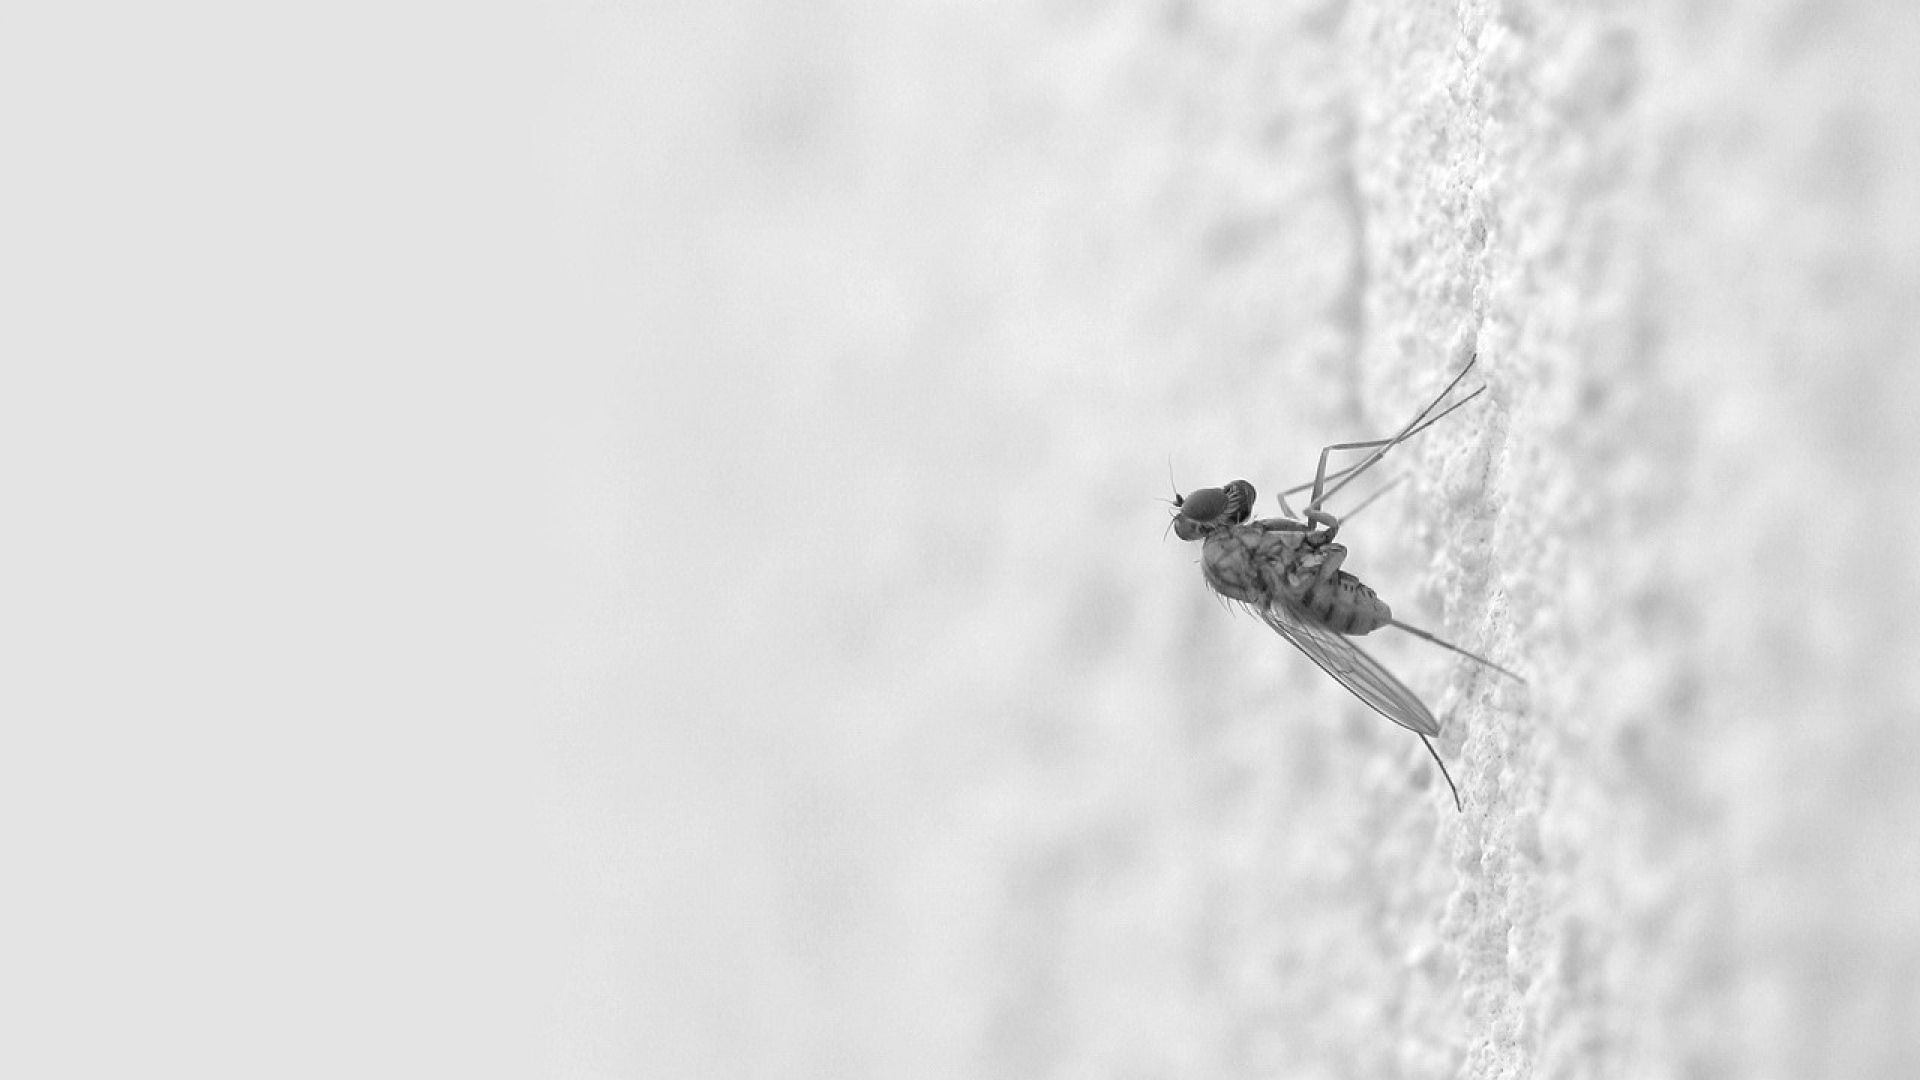 Download Wallpapers 1920x1080 Mosquito, Insect, Surface, Creep